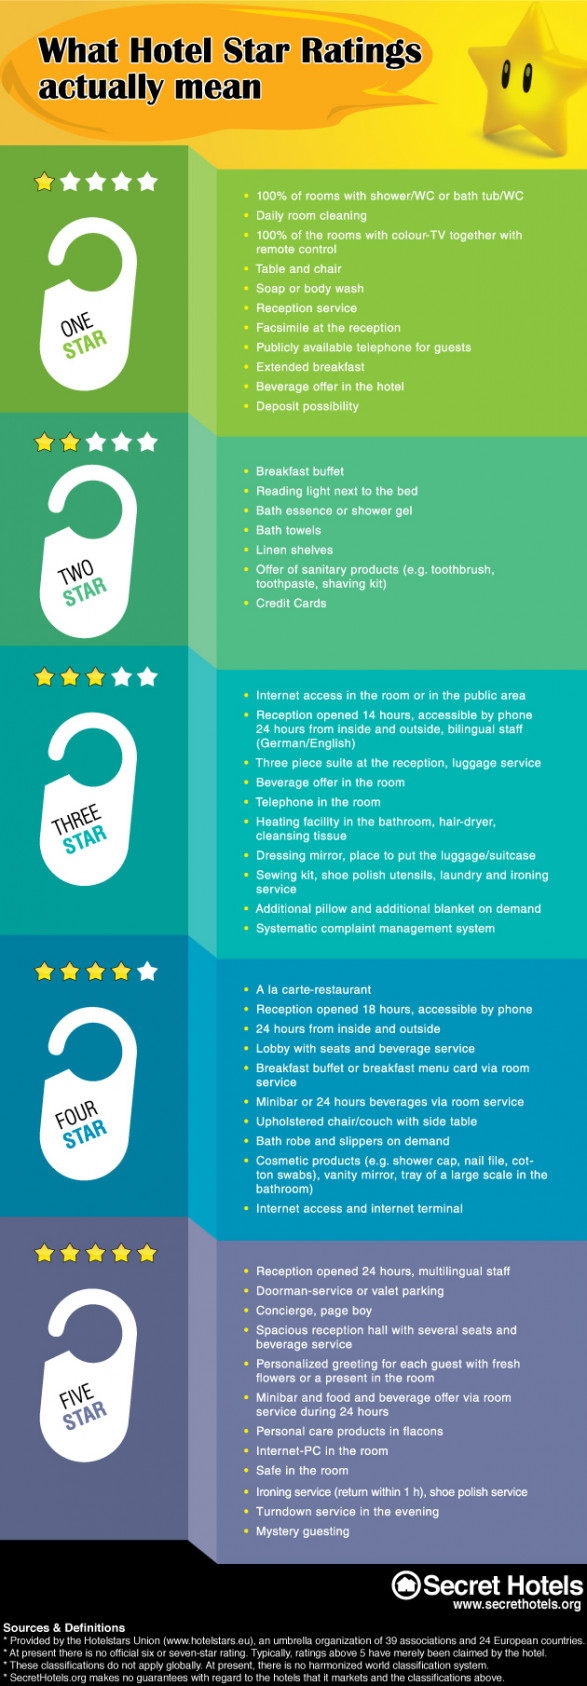 Hotel Star Ratings Explained